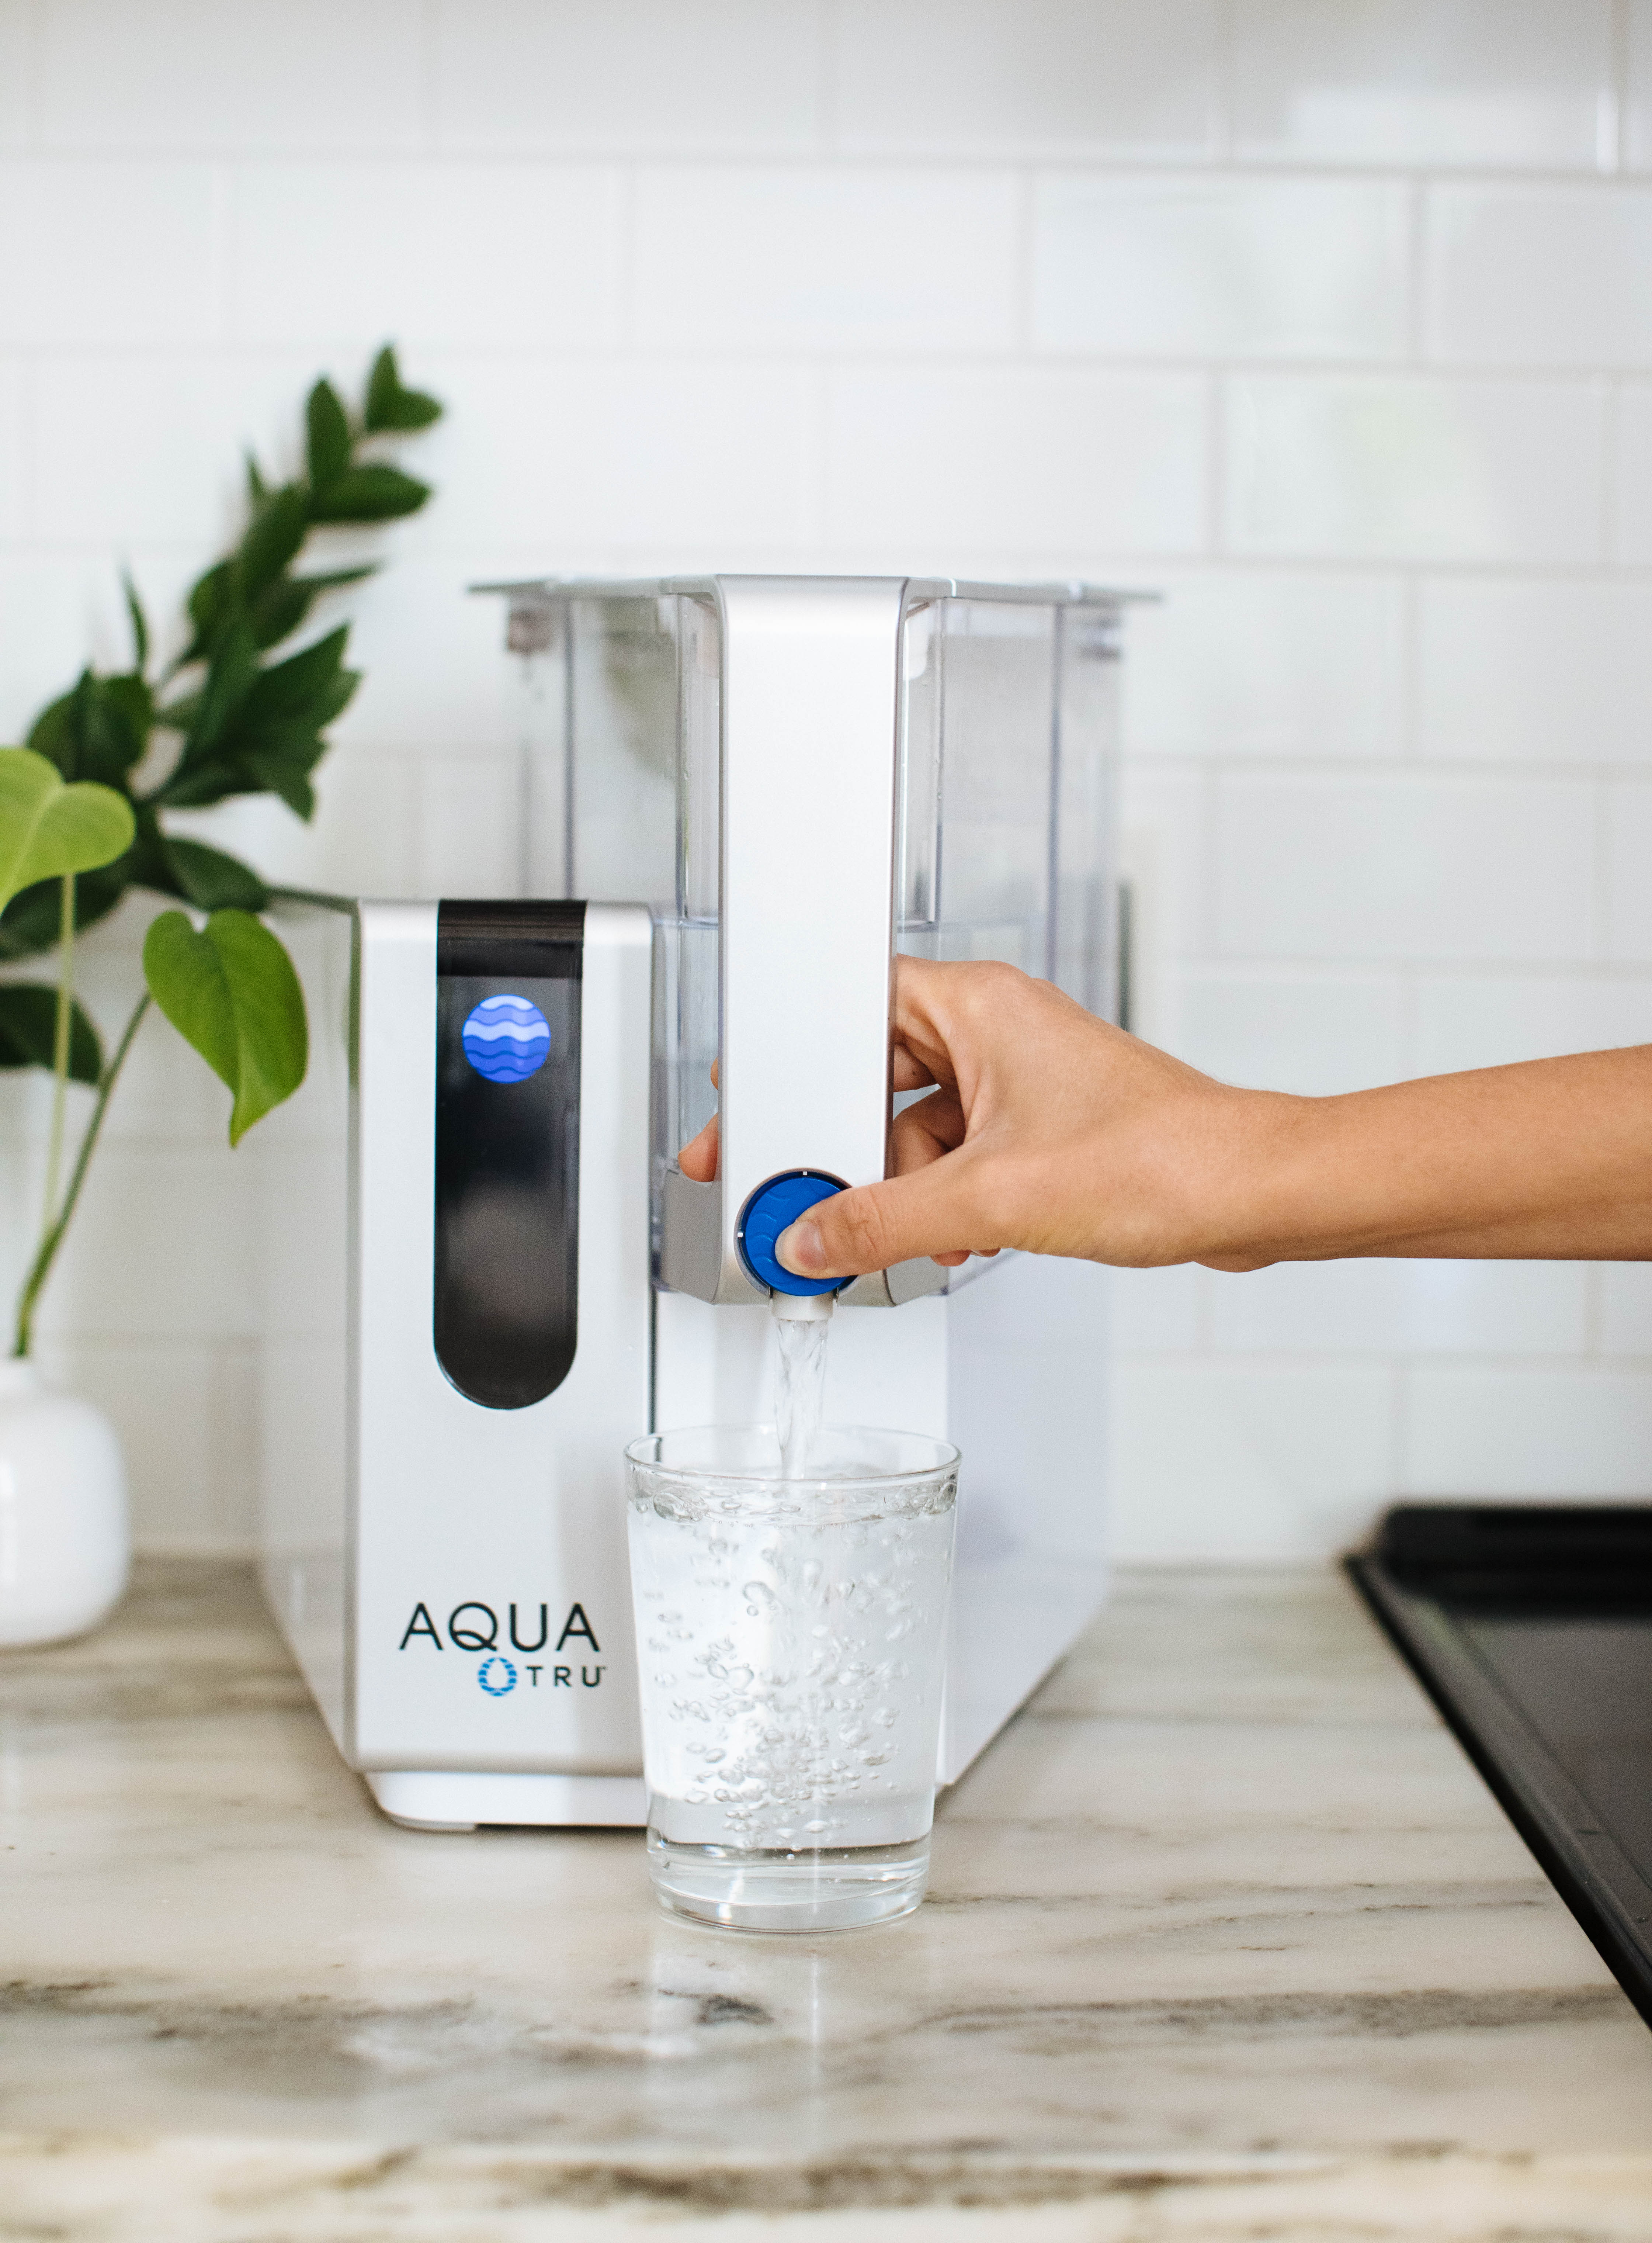 Nutrition Stripped shares how to create a non-toxic home and one recommendation is getting an AquaTru Water Filter.